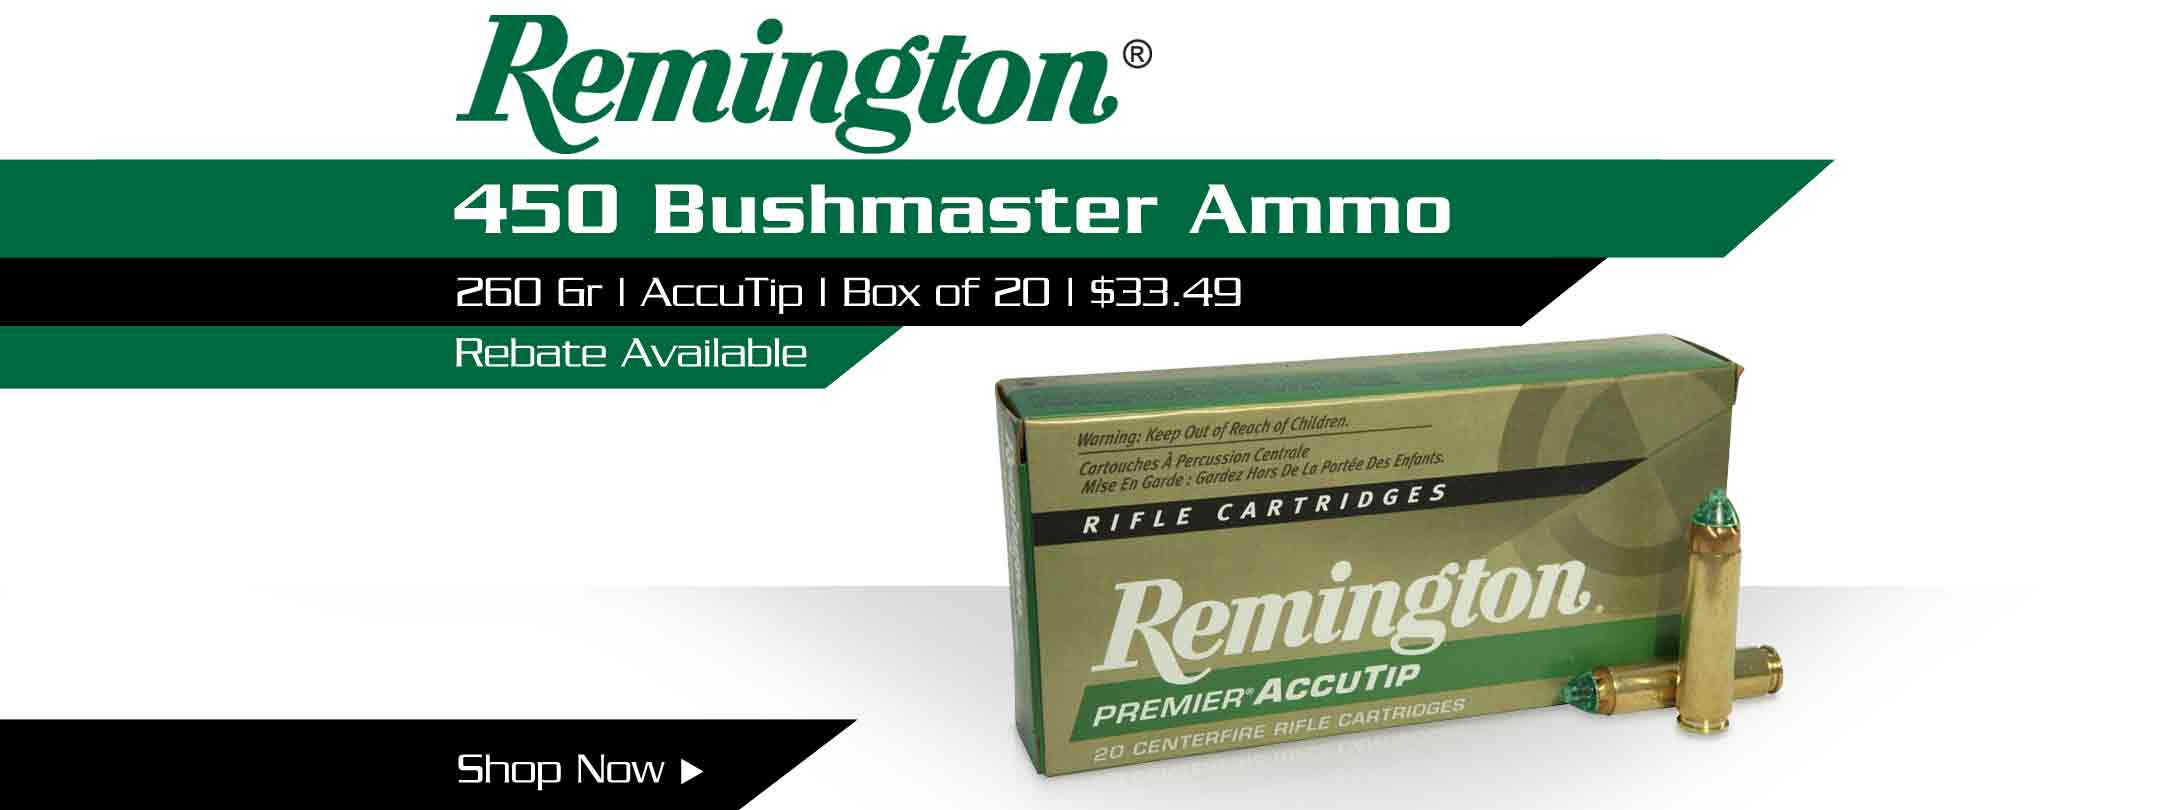 Remington 450 Bushmaster Ammo